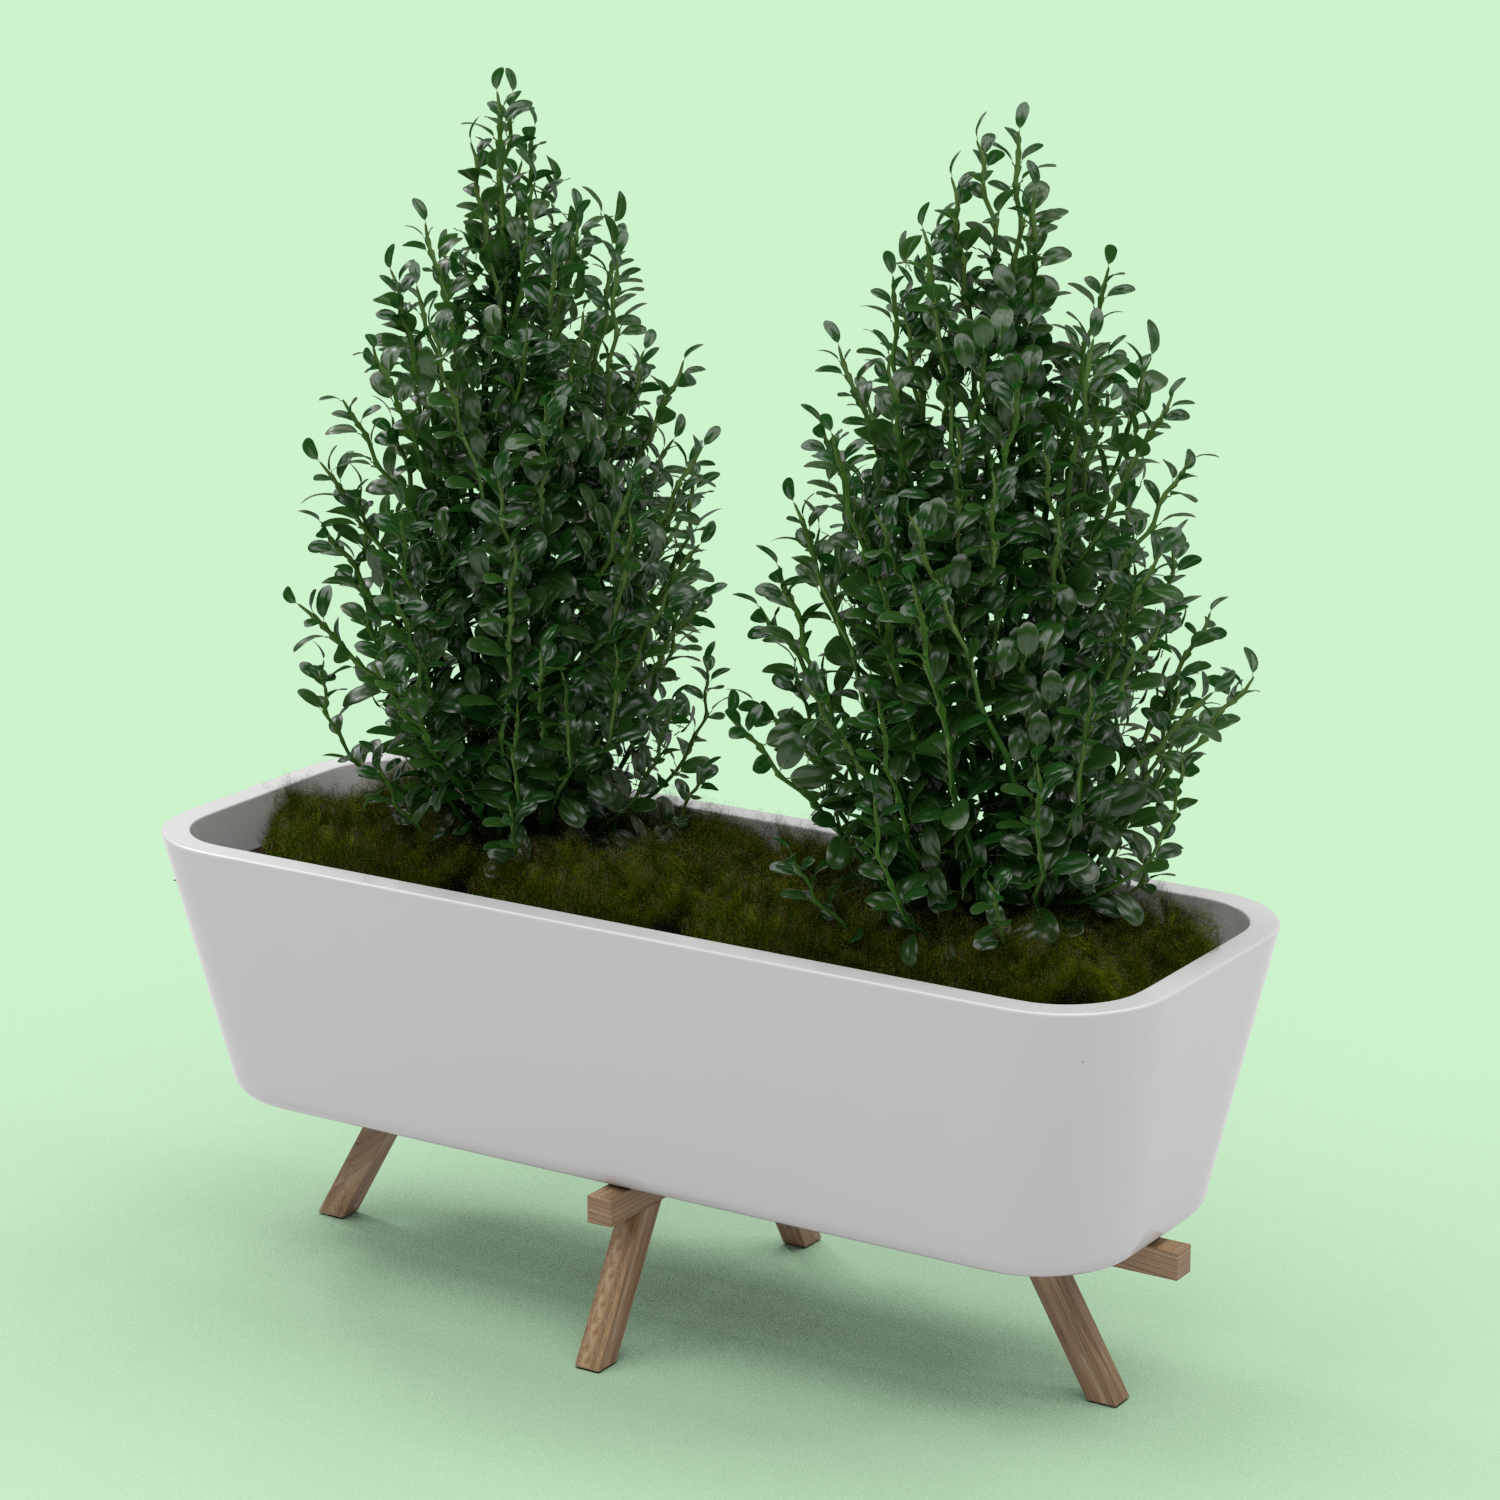 Planter made with white ceramic and wooden legs